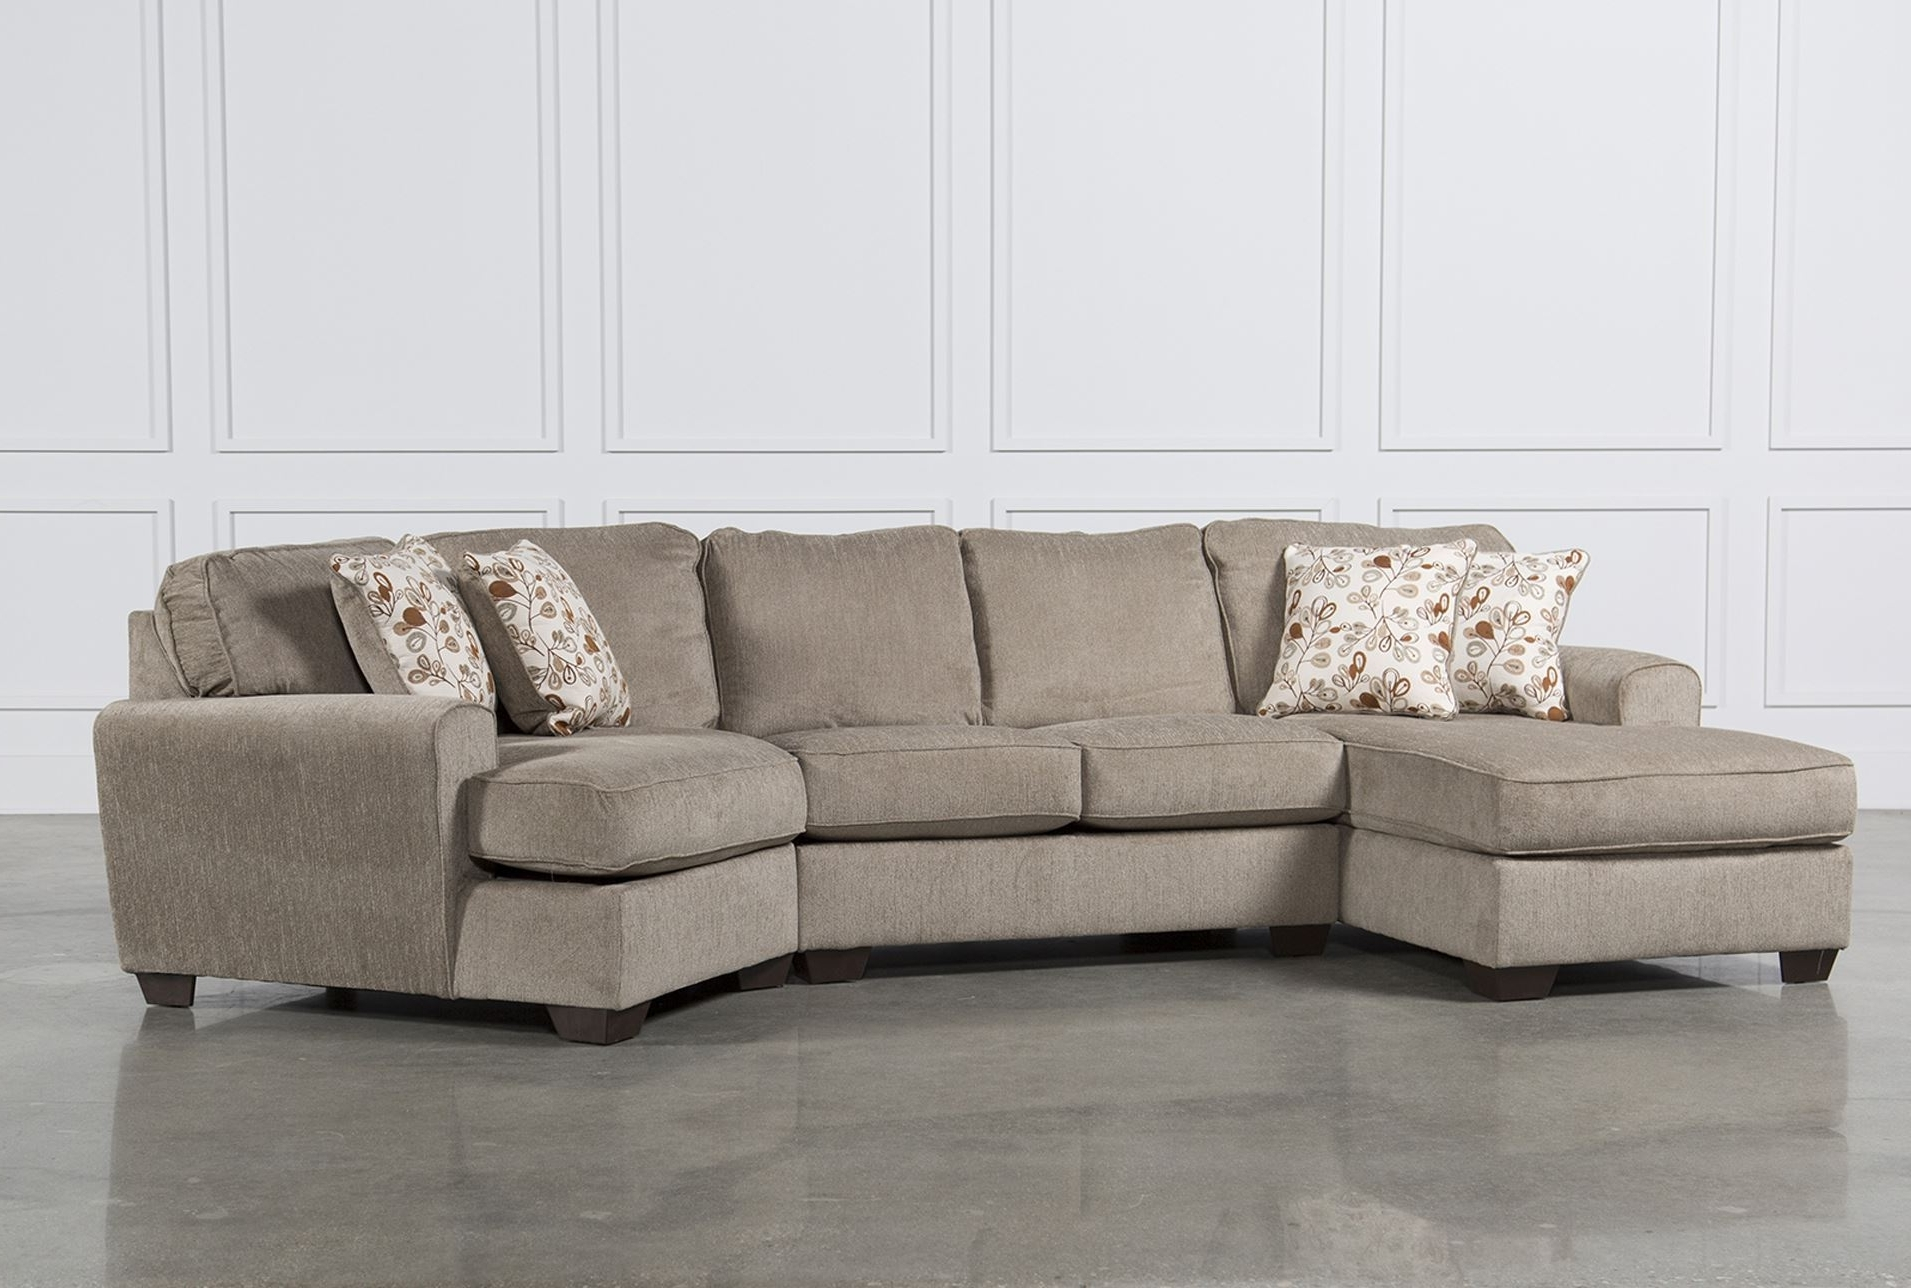 Widely Used 3 Piece Sectional Sofas With Chaise Within Patola Park 4 Piece Sectional W Raf Cuddler Living Spaces In Sofa (View 10 of 15)